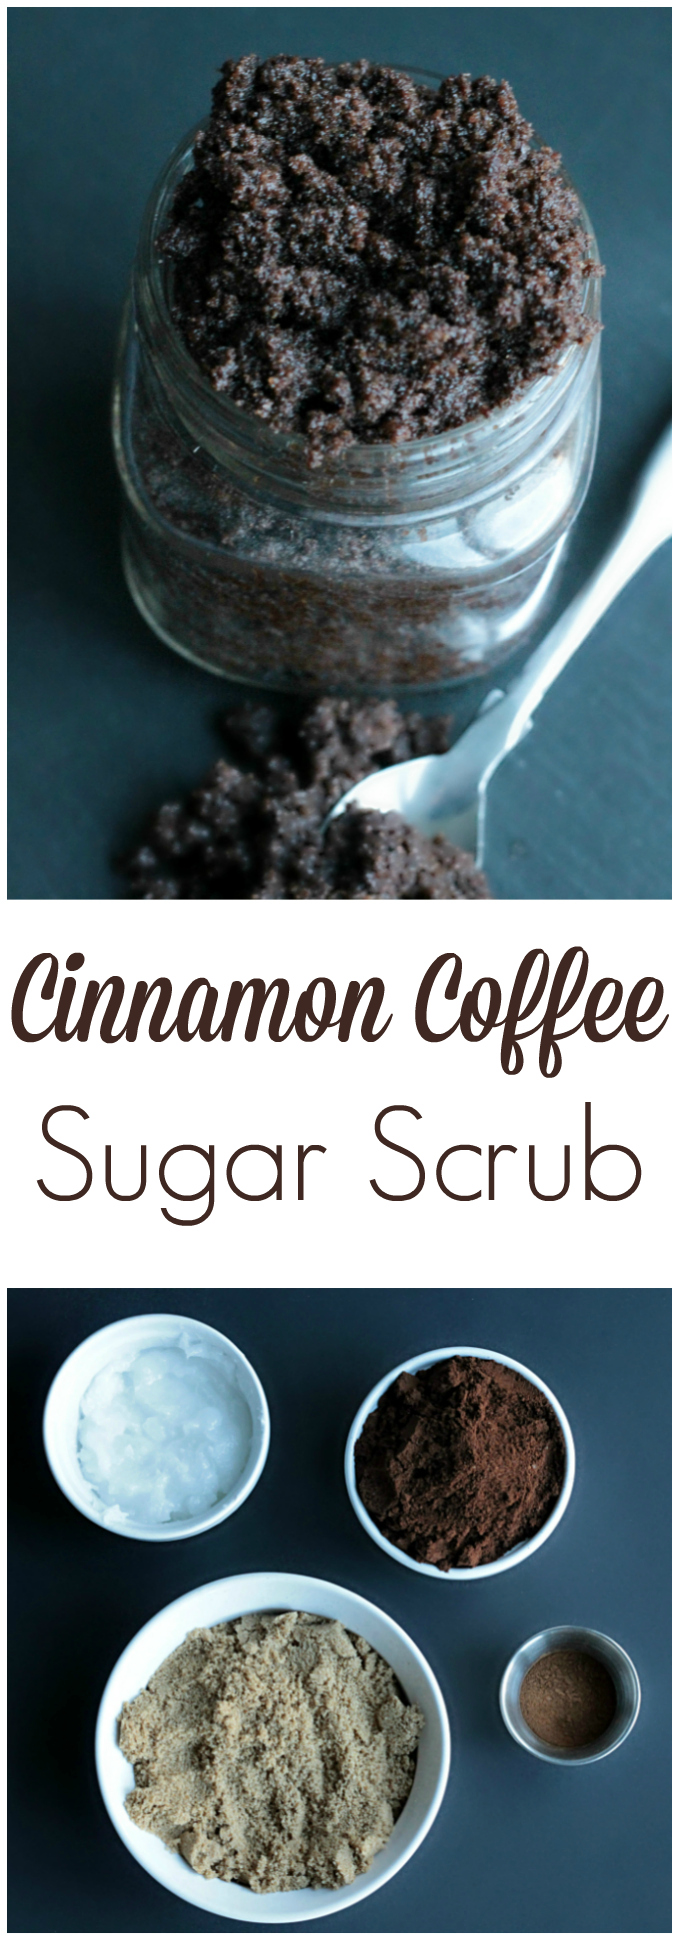 Cinnamon Coffee Sugar Scrub